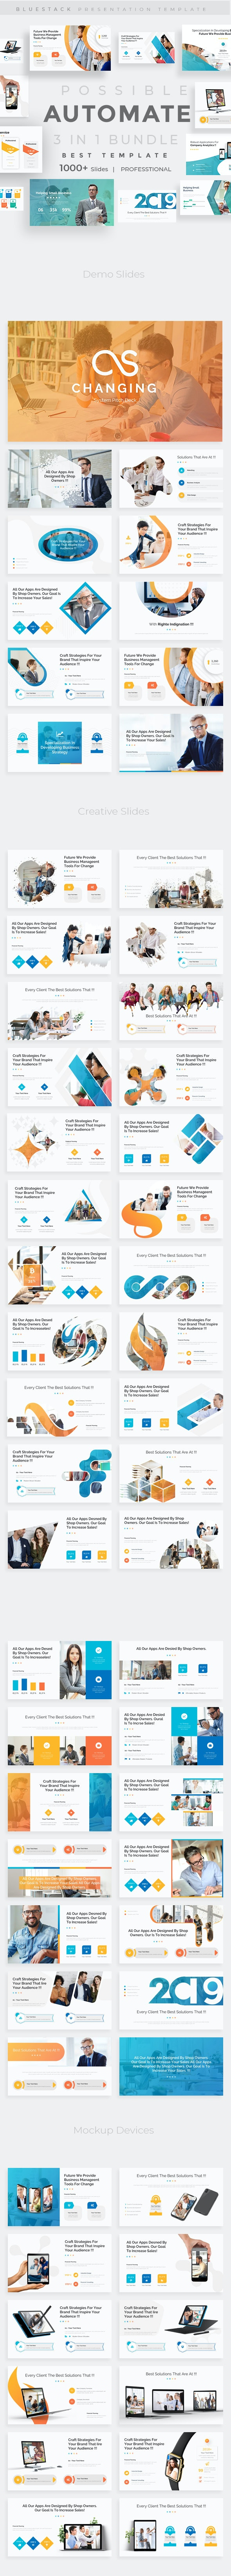 3 in 1 Automate Possible Bundle Creative and Business Pitch Deck Powerpoint Template - Creative PowerPoint Templates